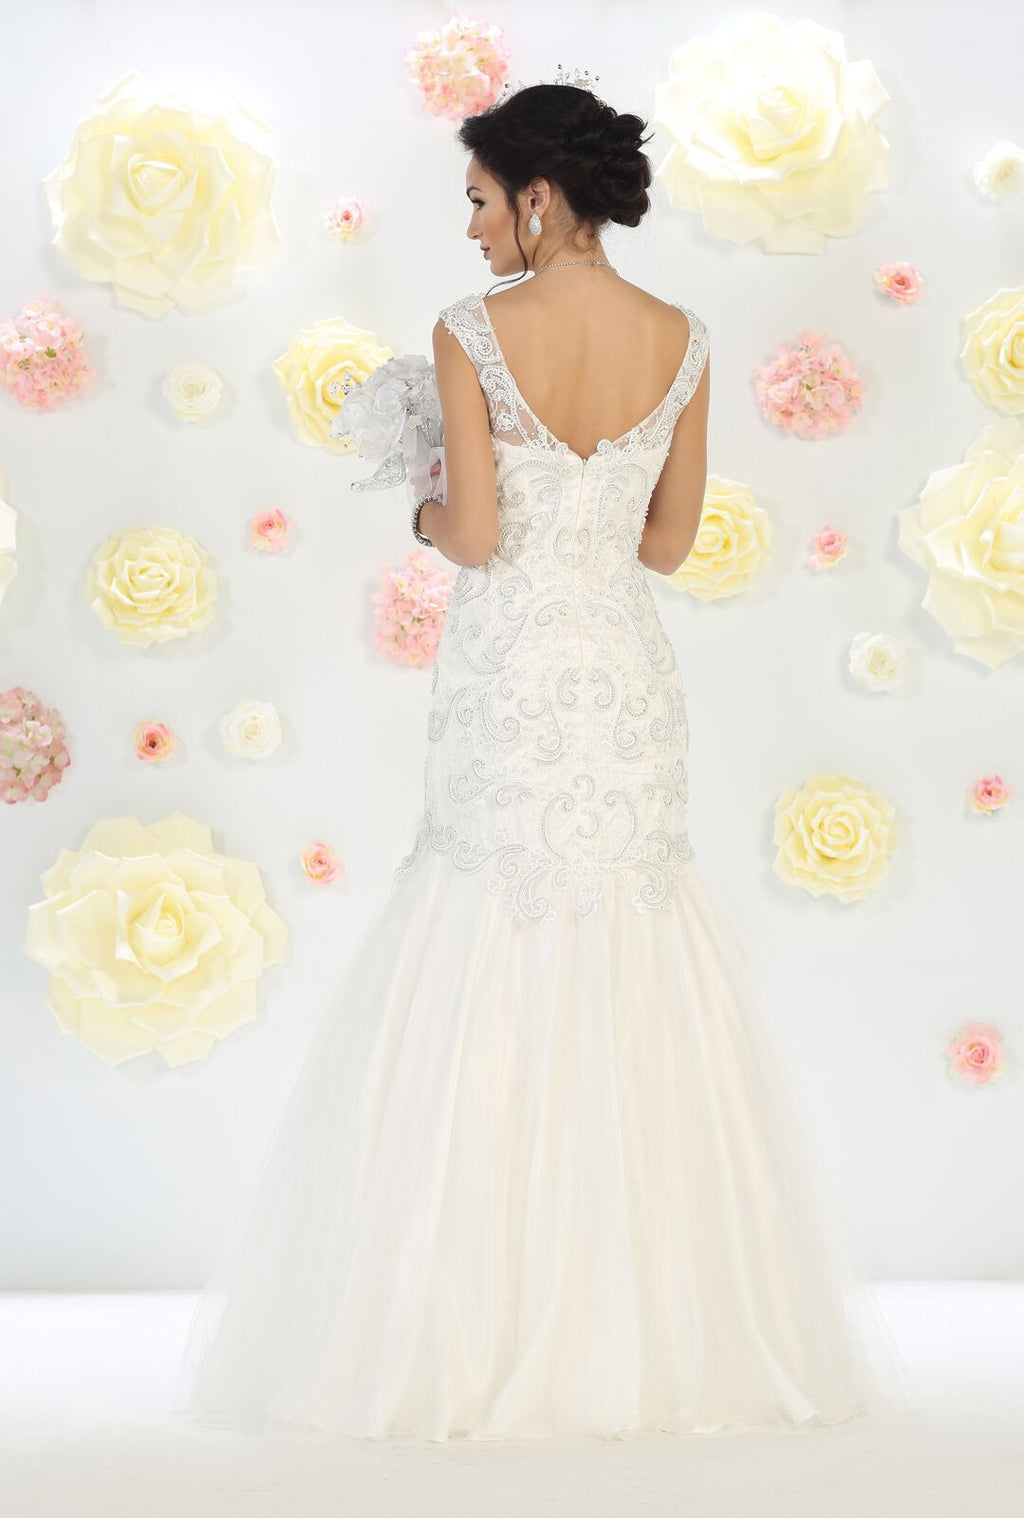 Wedding Long Gown - The Dress Outlet  May Queen